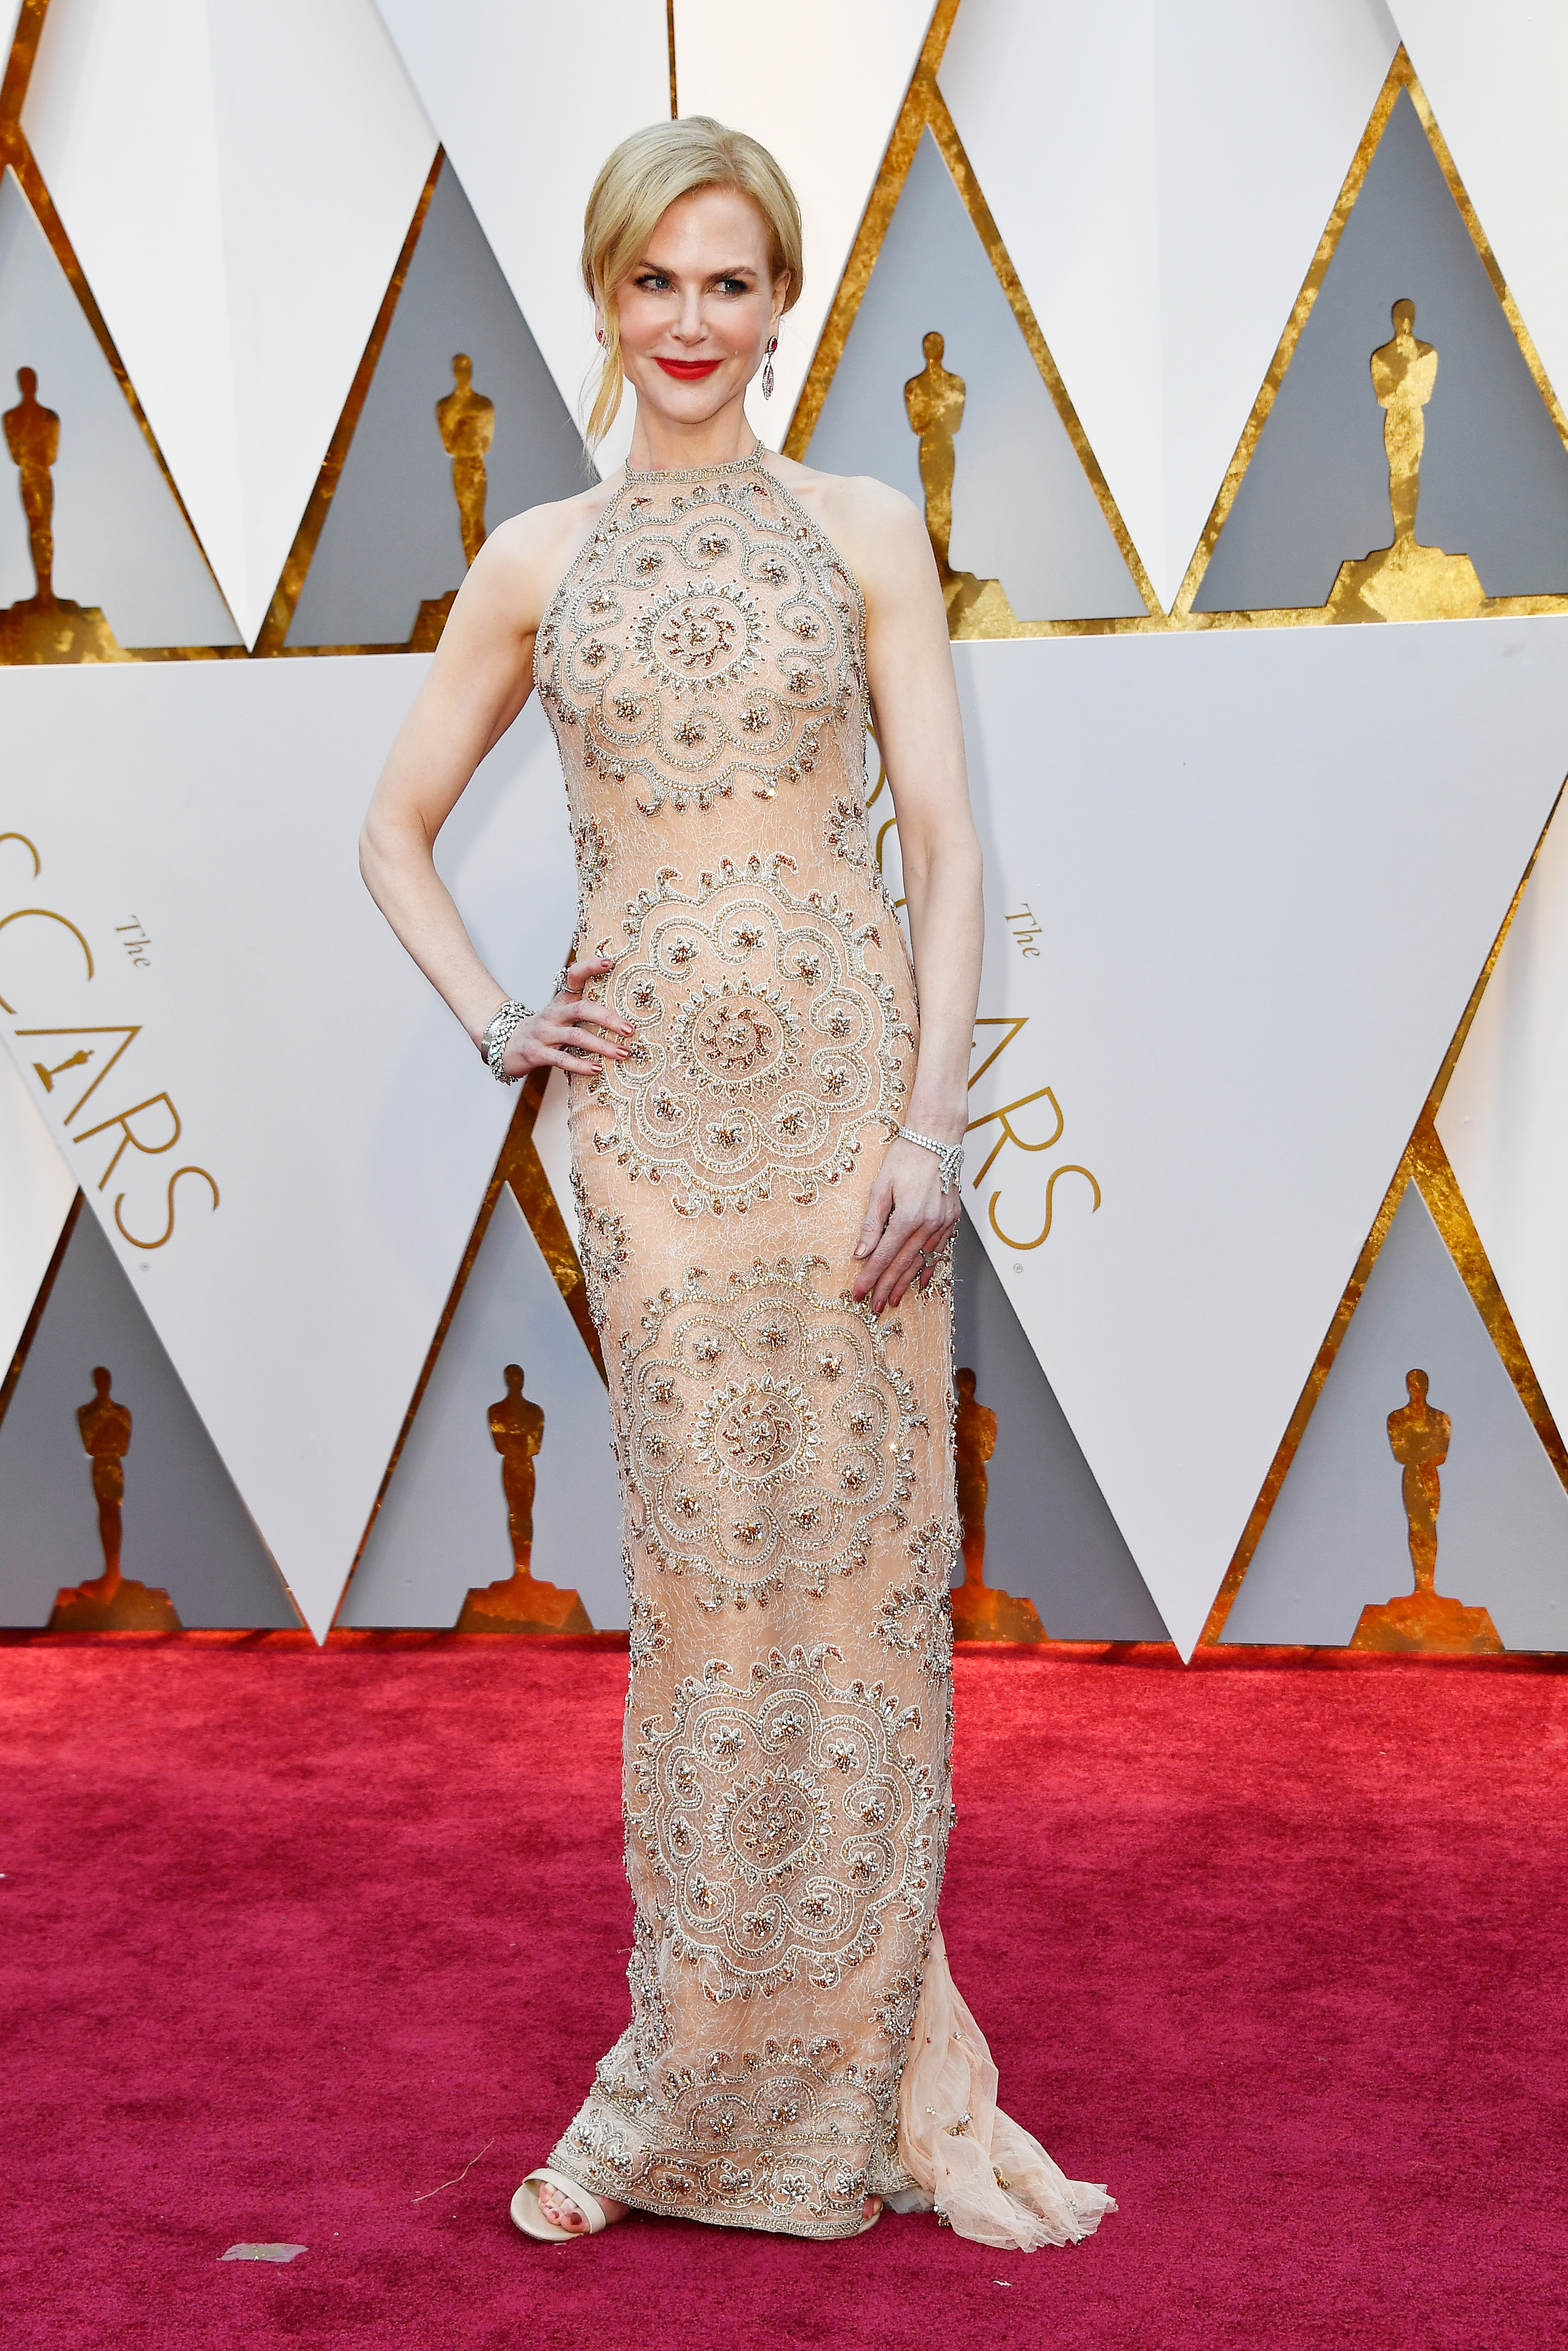 Nicole Kidman Stuns in Nude Embellished Gown and 119